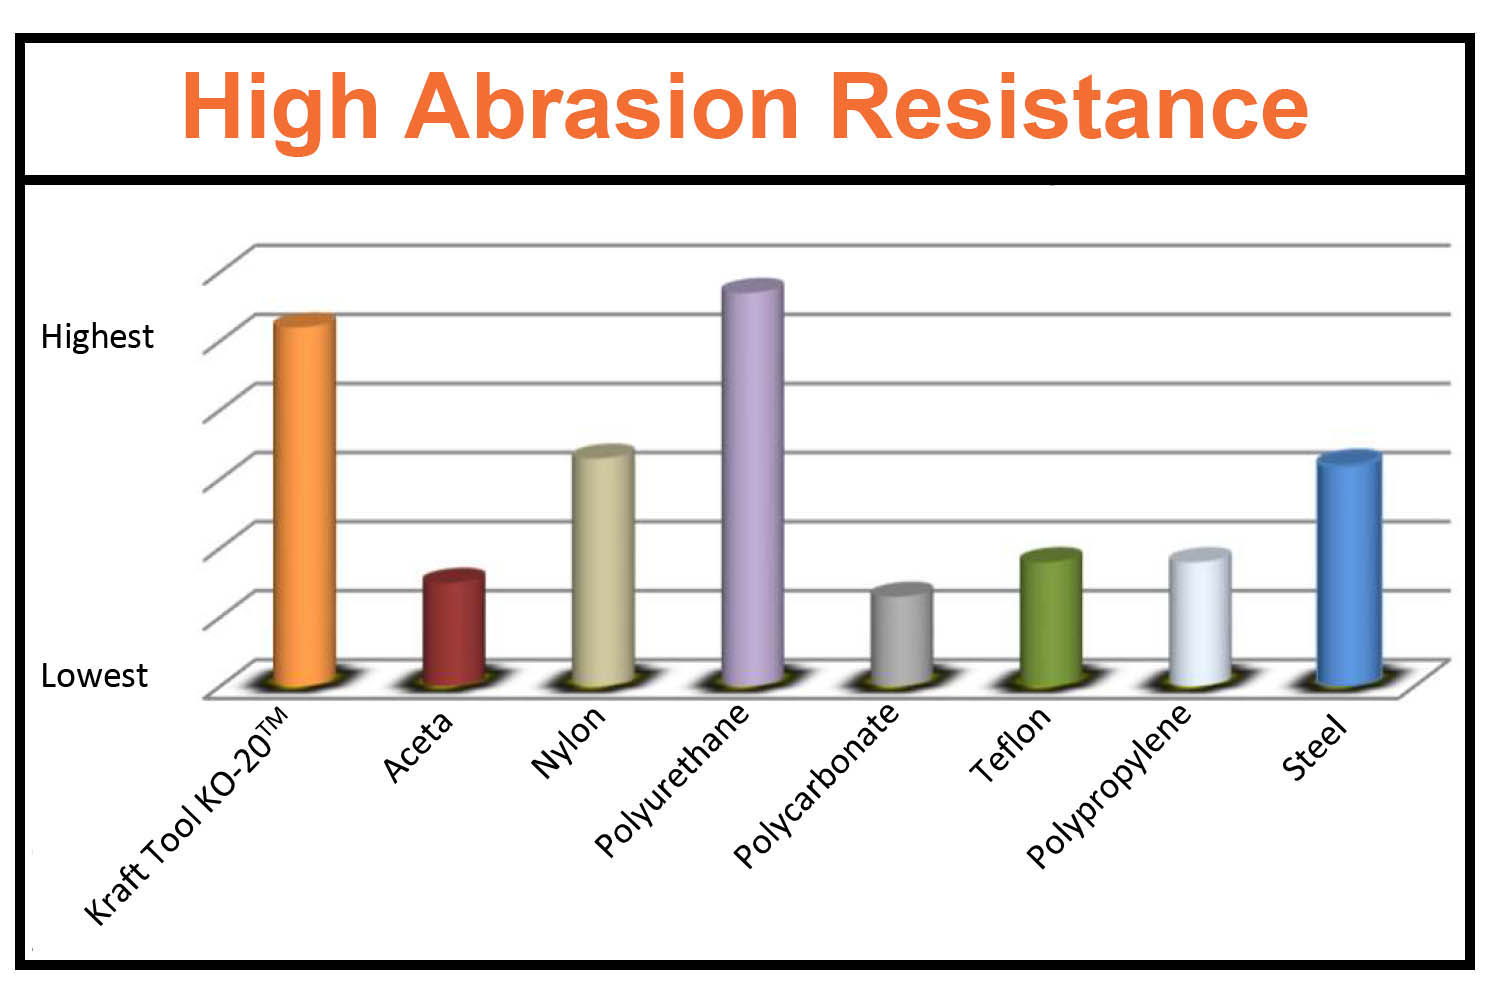 KO-20 has high abrasion resistance